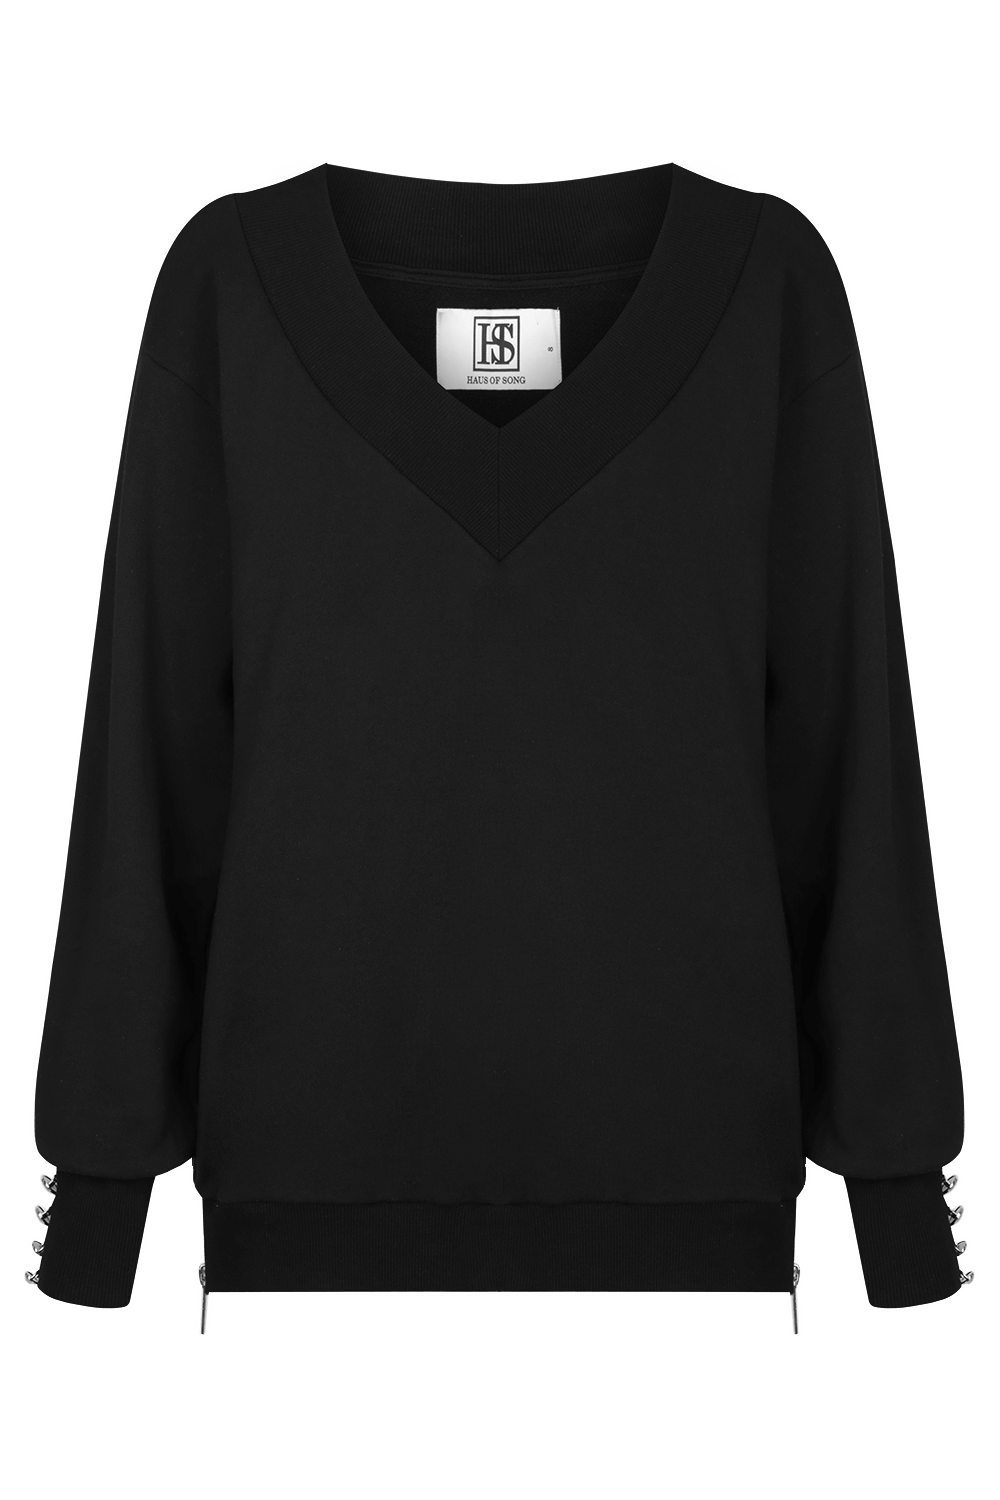 OPEN SIGHT Sweatshirt - BLK/PLTNM - HAUS OF SONG